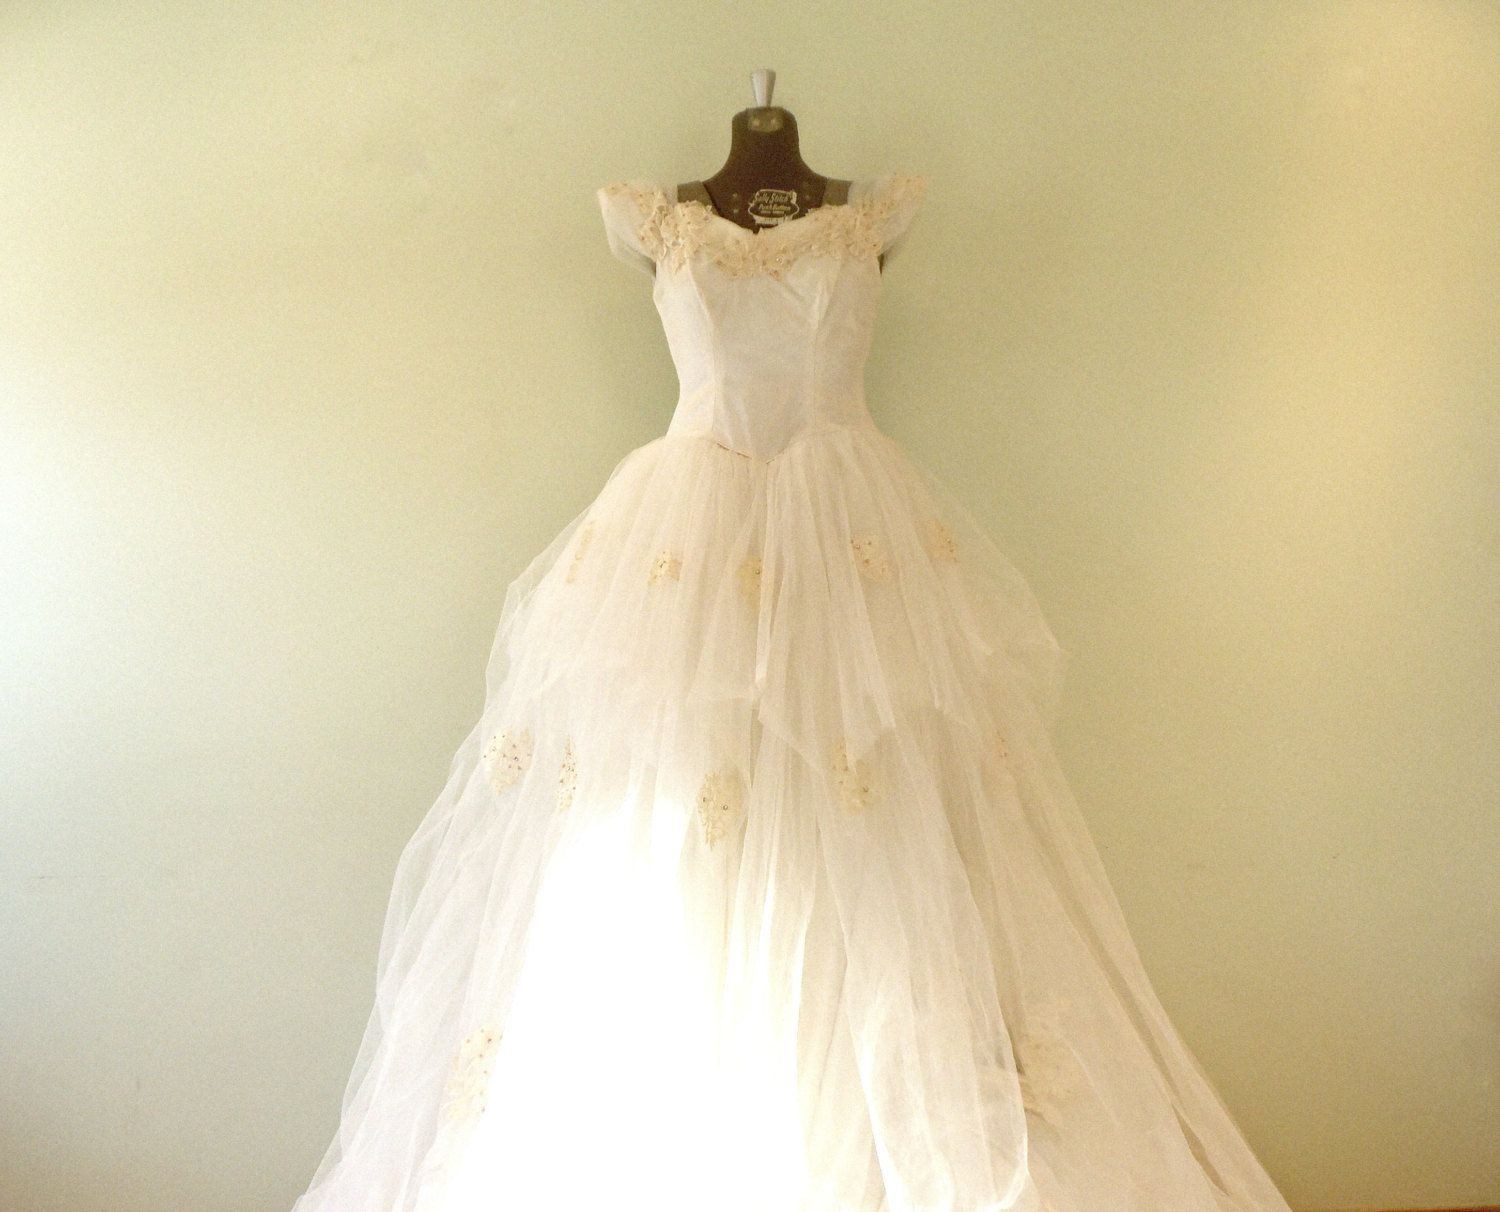 Vintage us wedding dress xsmallsmall dress with train